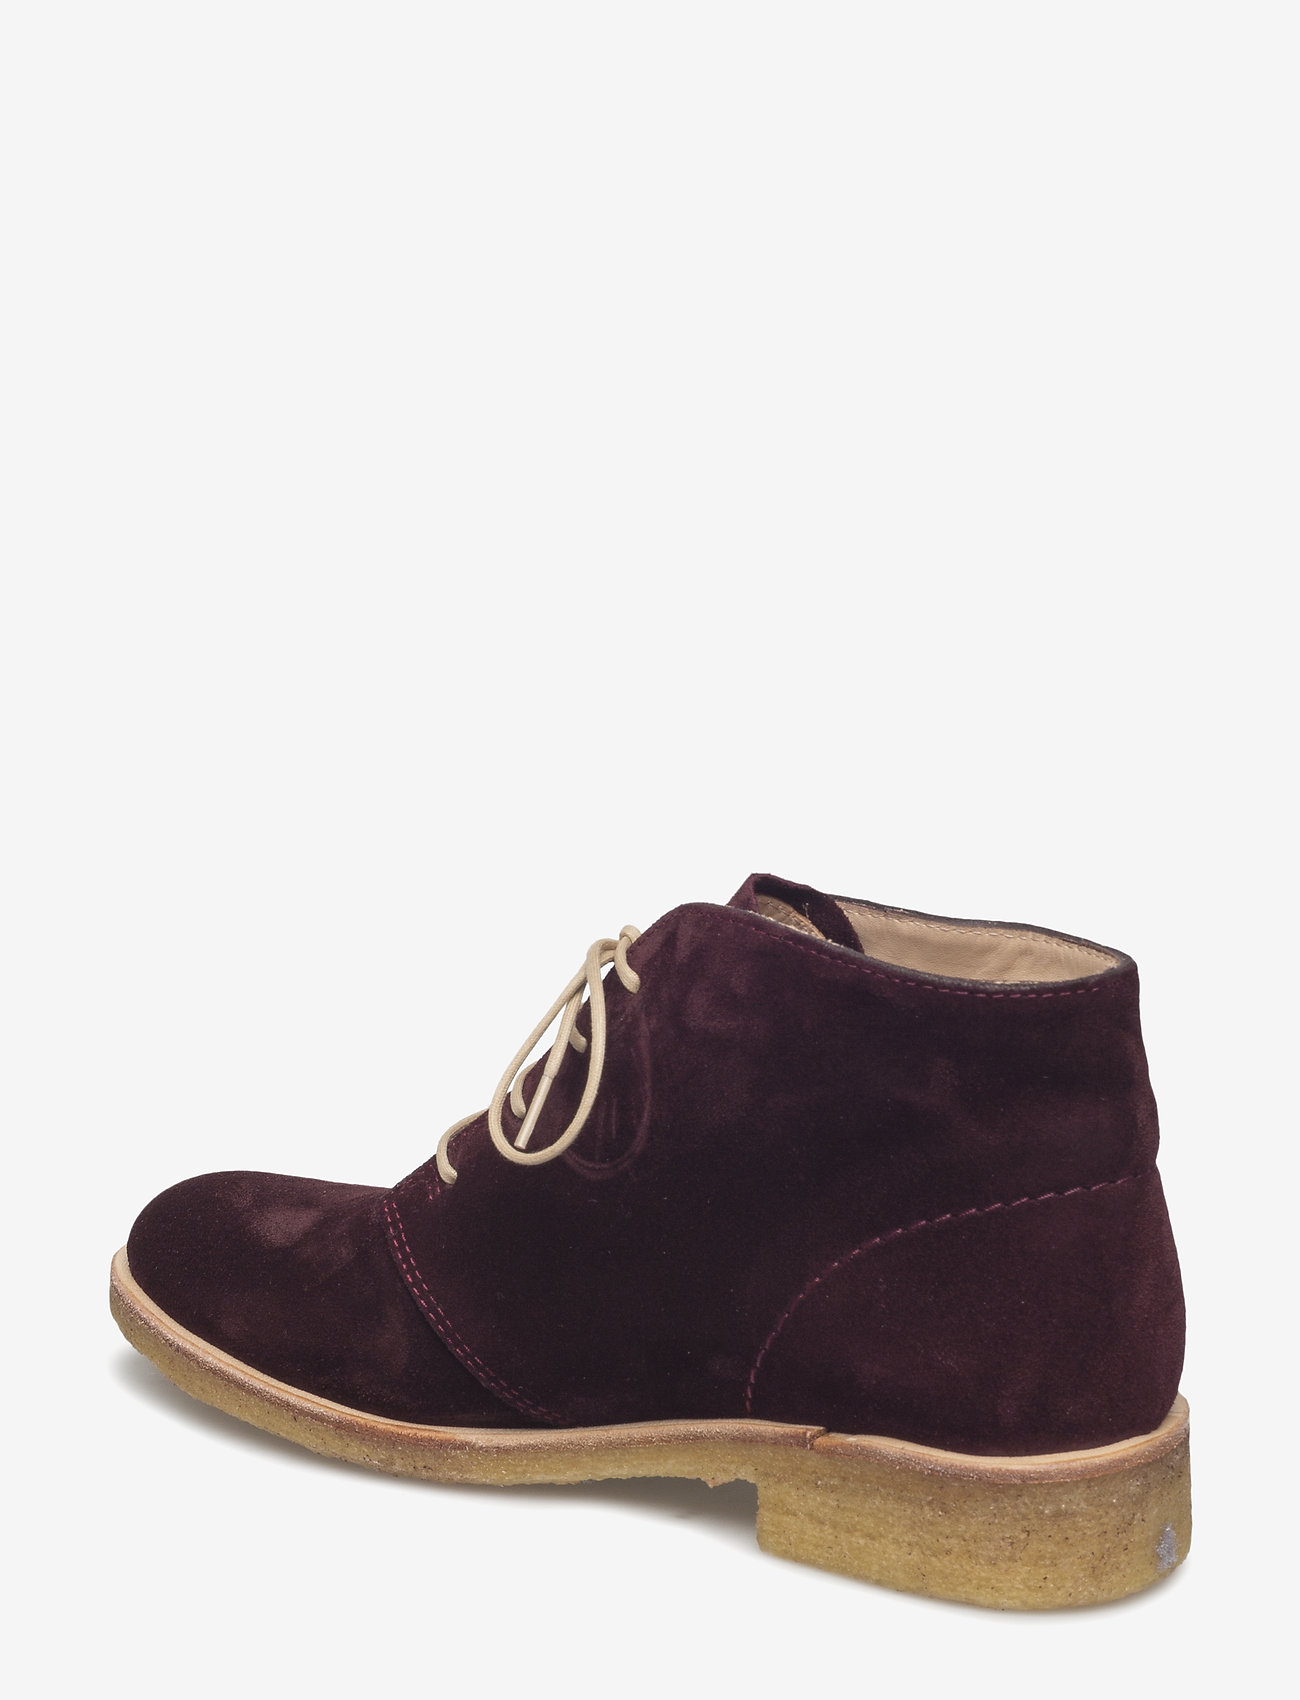 Booties - Flat (2195 Bordeaux) - ANGULUS